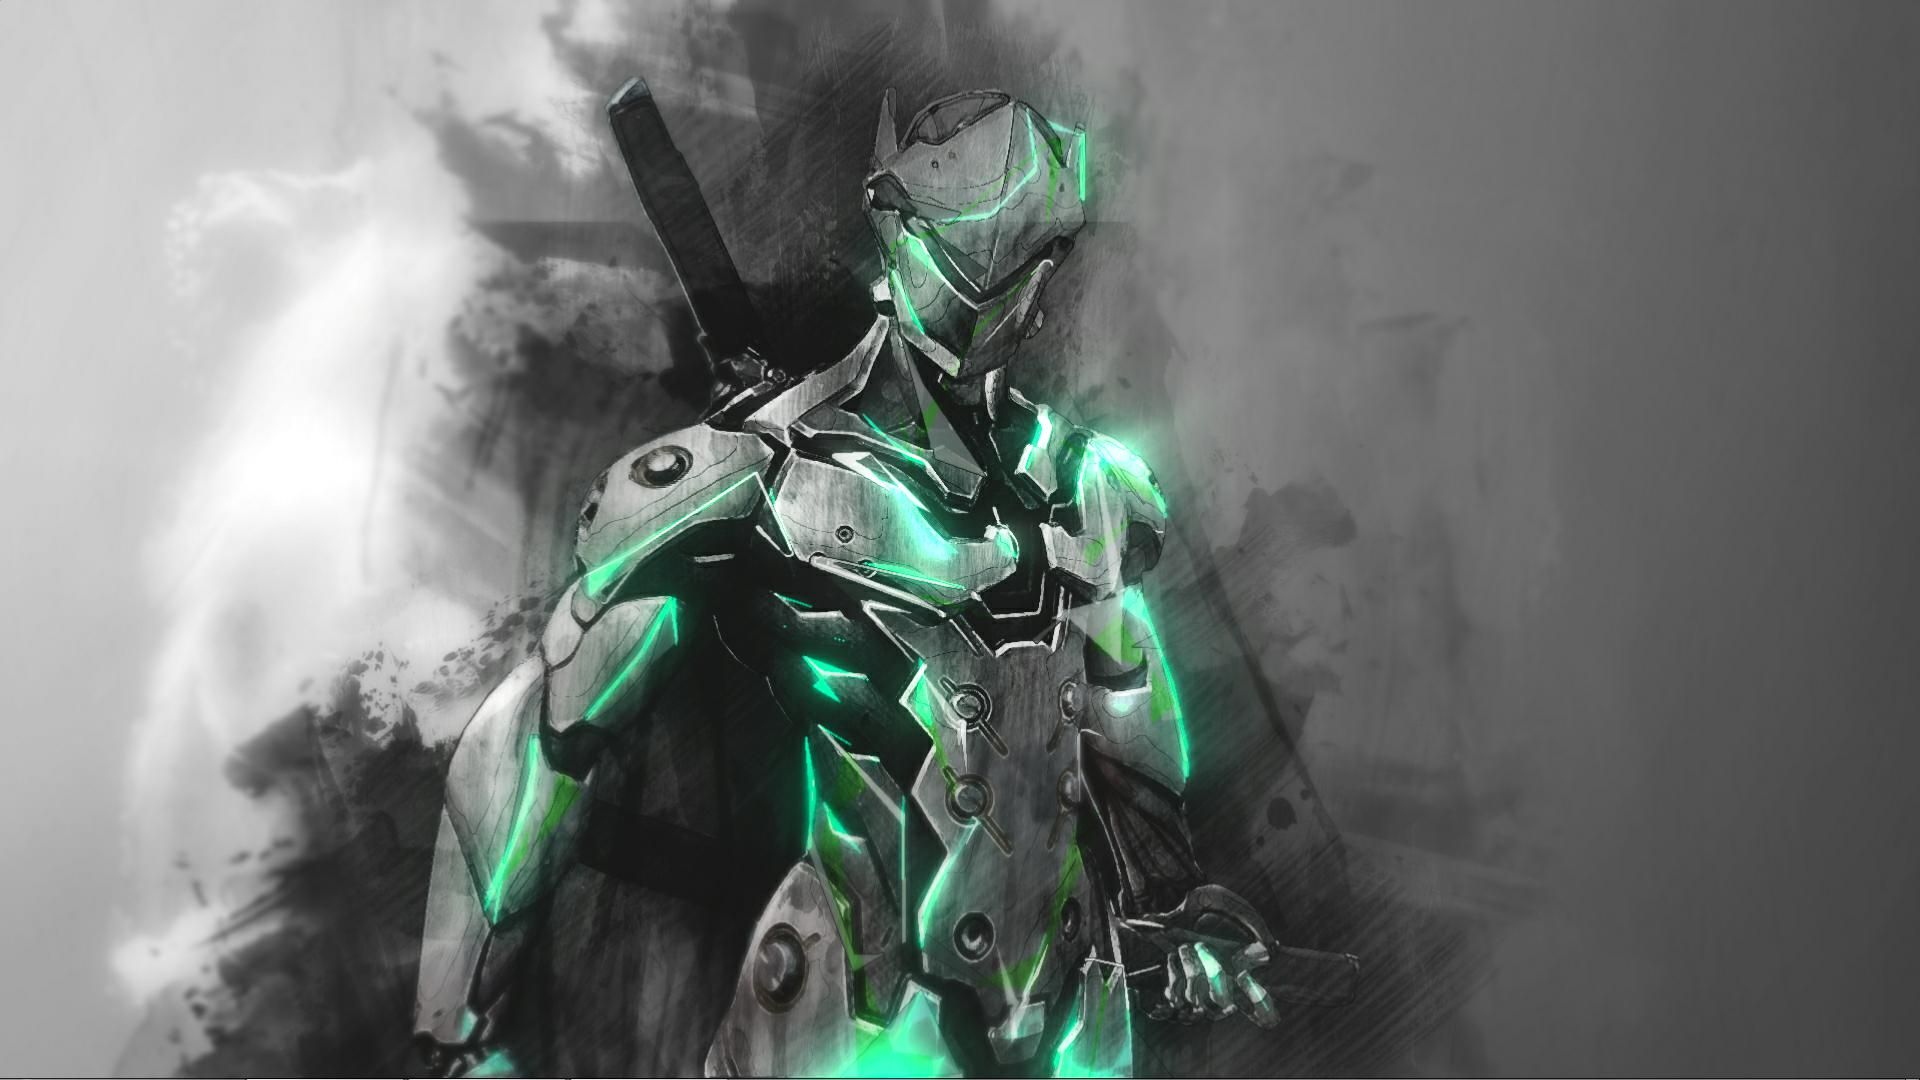 overwatch Genji wallpaper for Wallpaper Engine Искусство